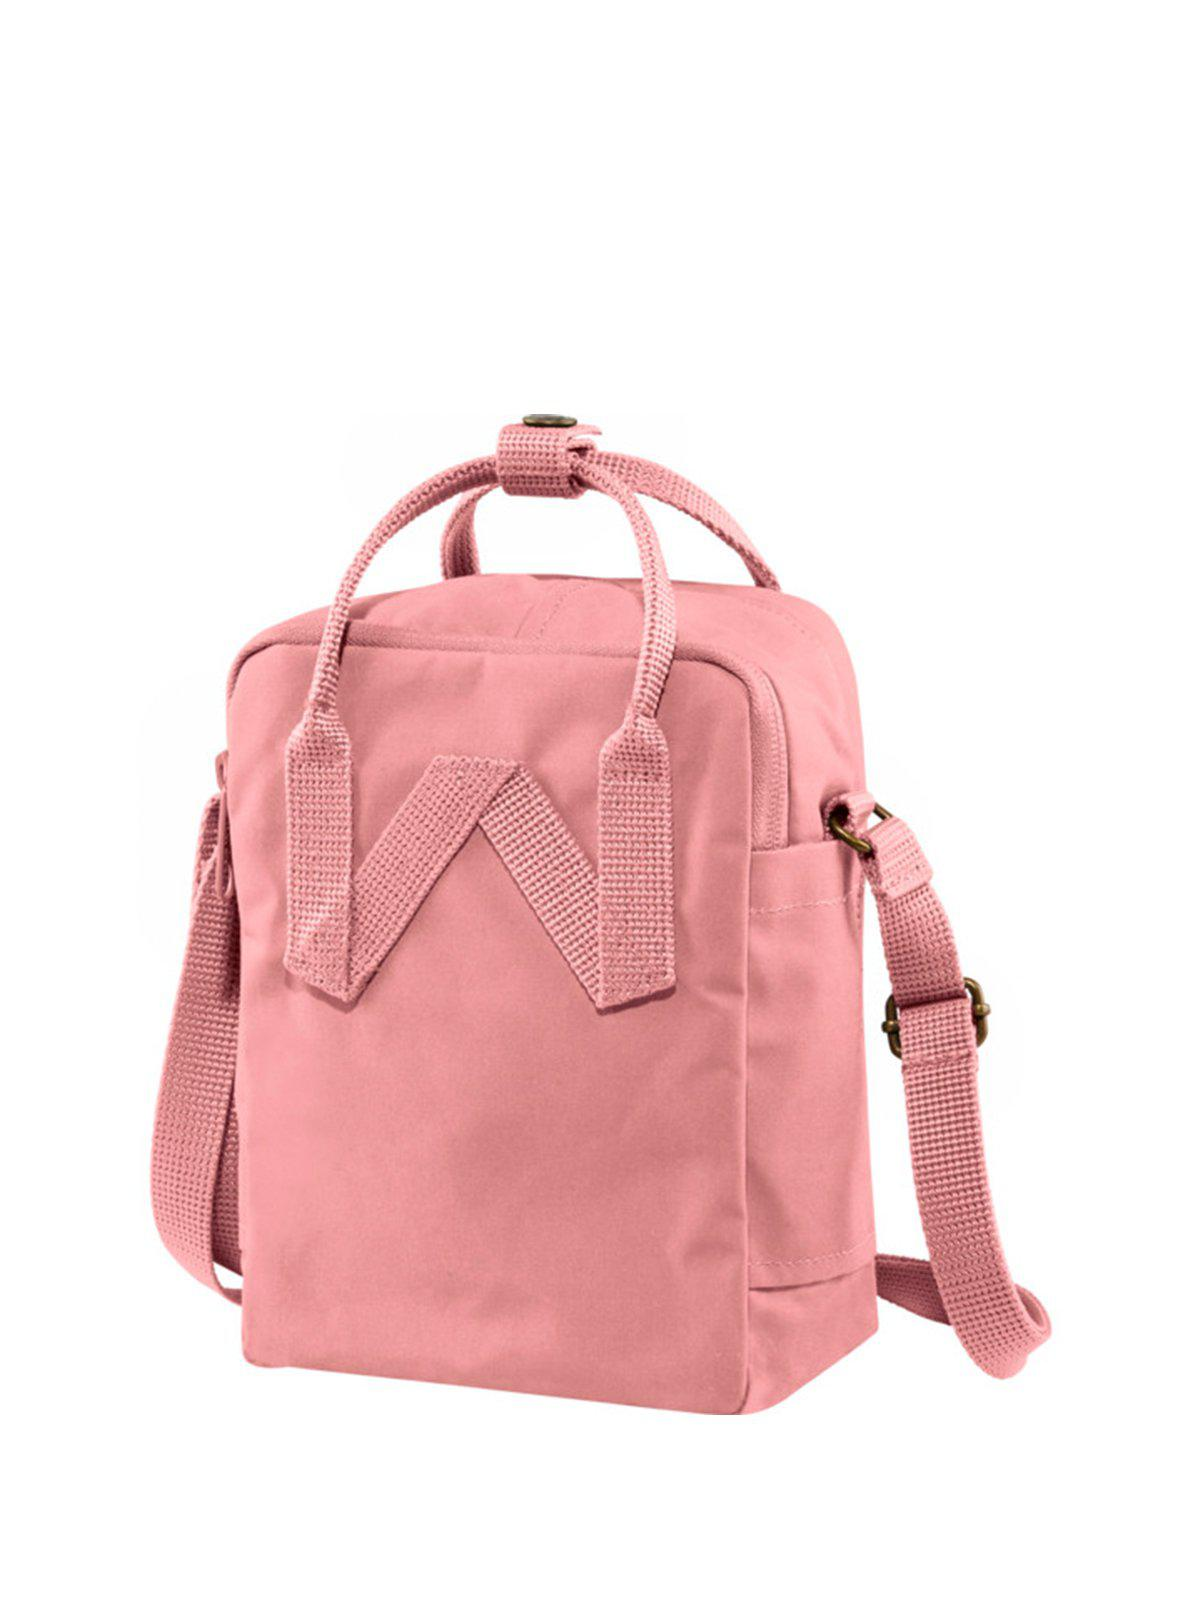 Fjallraven Kanken Sling Bag Pink - MORE by Morello Indonesia